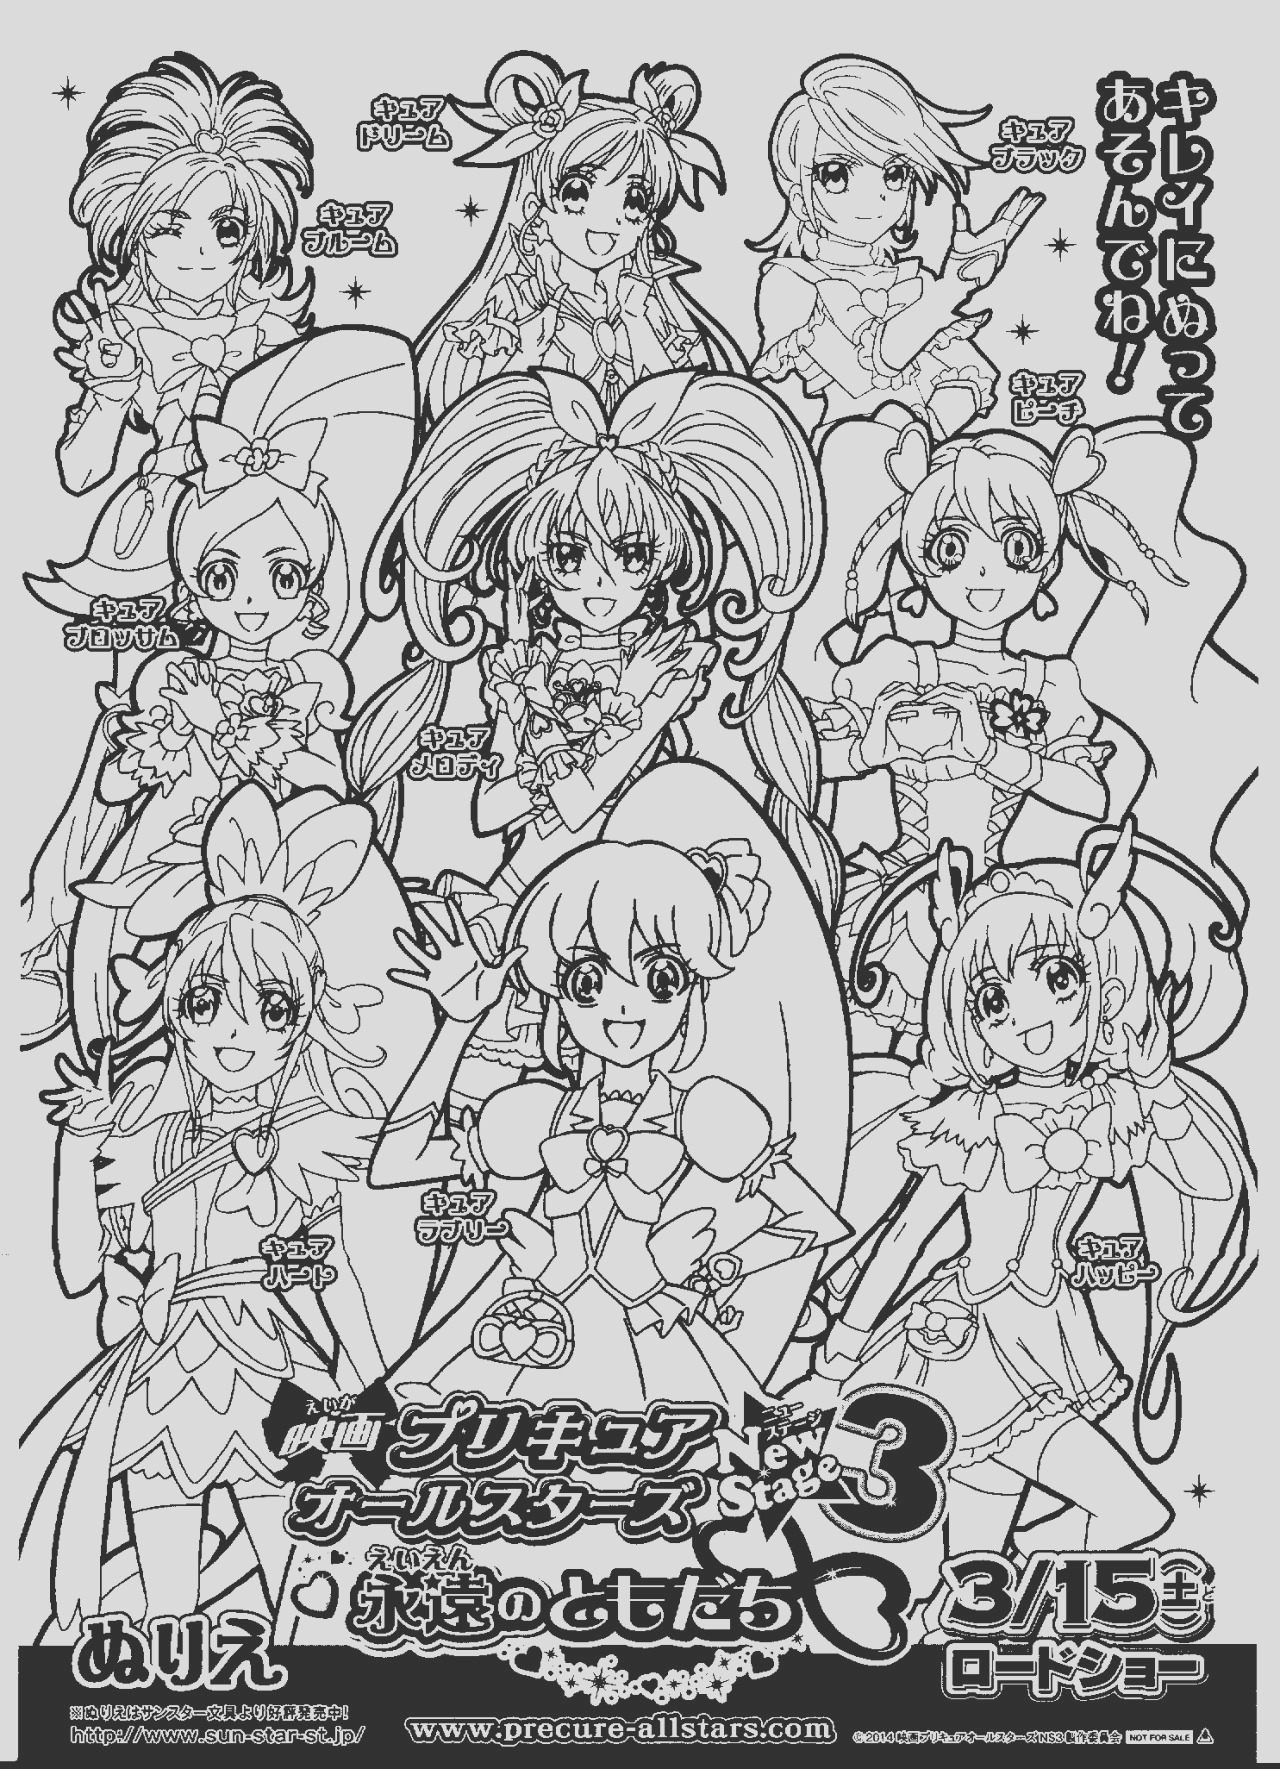 precure all stars dx3 coloring page